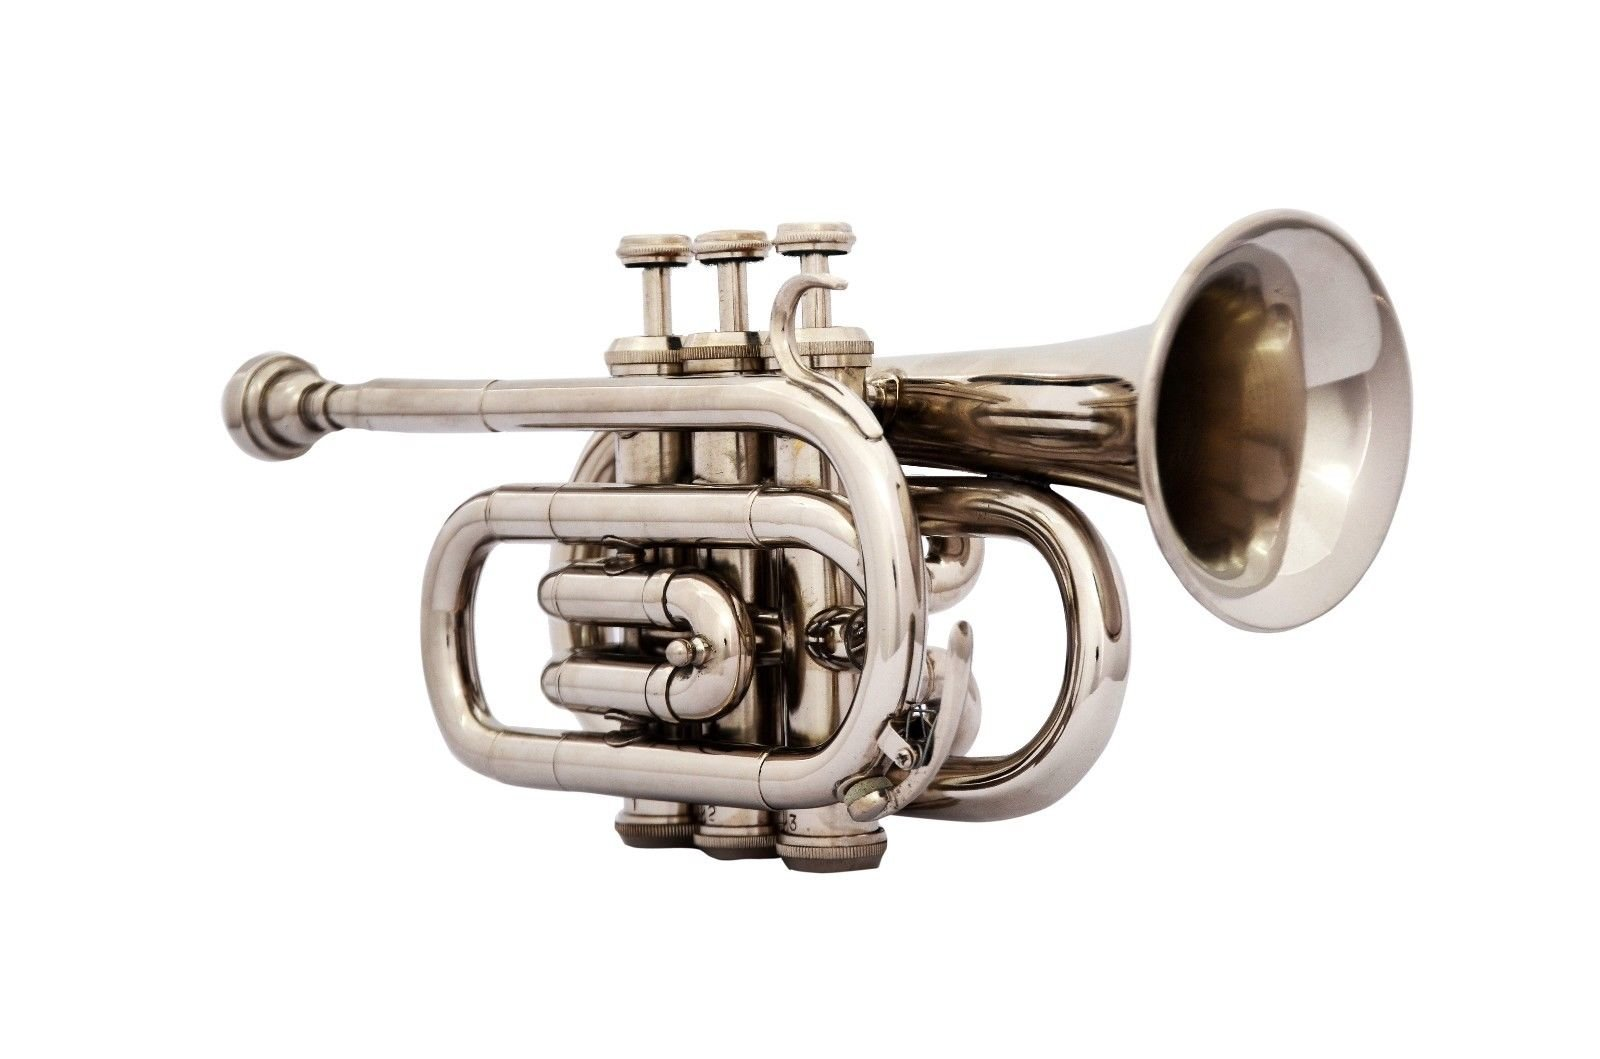 SHREYAS TRUMPET POCKET Bb NICKEL PLATED WITH BAG 7C MOUTH PIECE FAST SHIP shry154 by SHREYAS